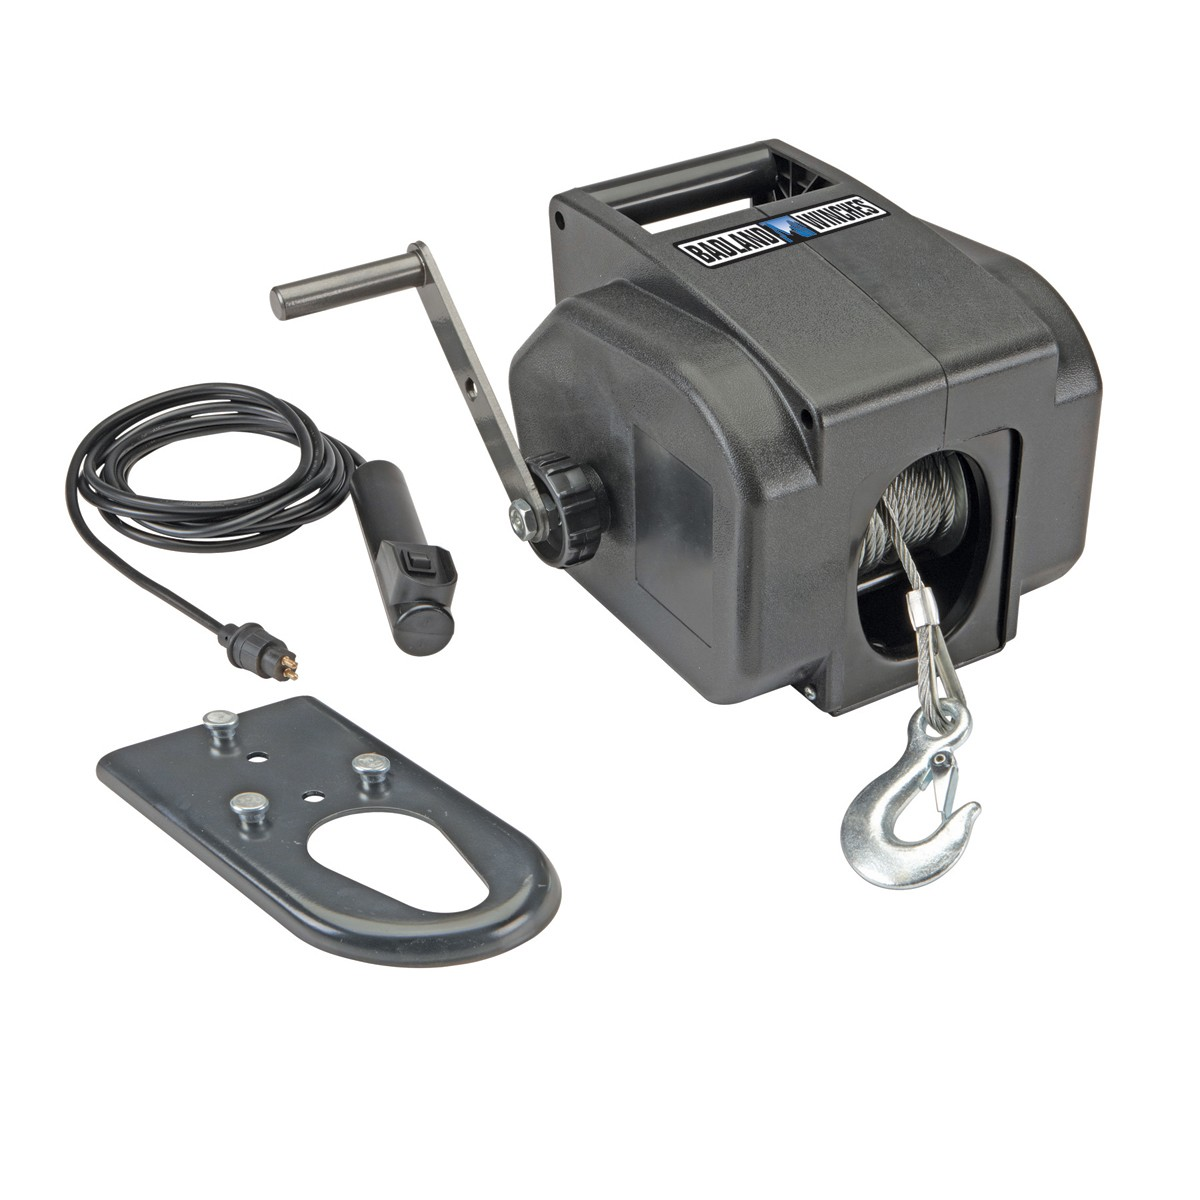 hight resolution of badland marine electric winch 2000 lb towing cable 30 ft aircraft badlands 2000 lb winch wiring diagram badlands 2000 lb winch wiring